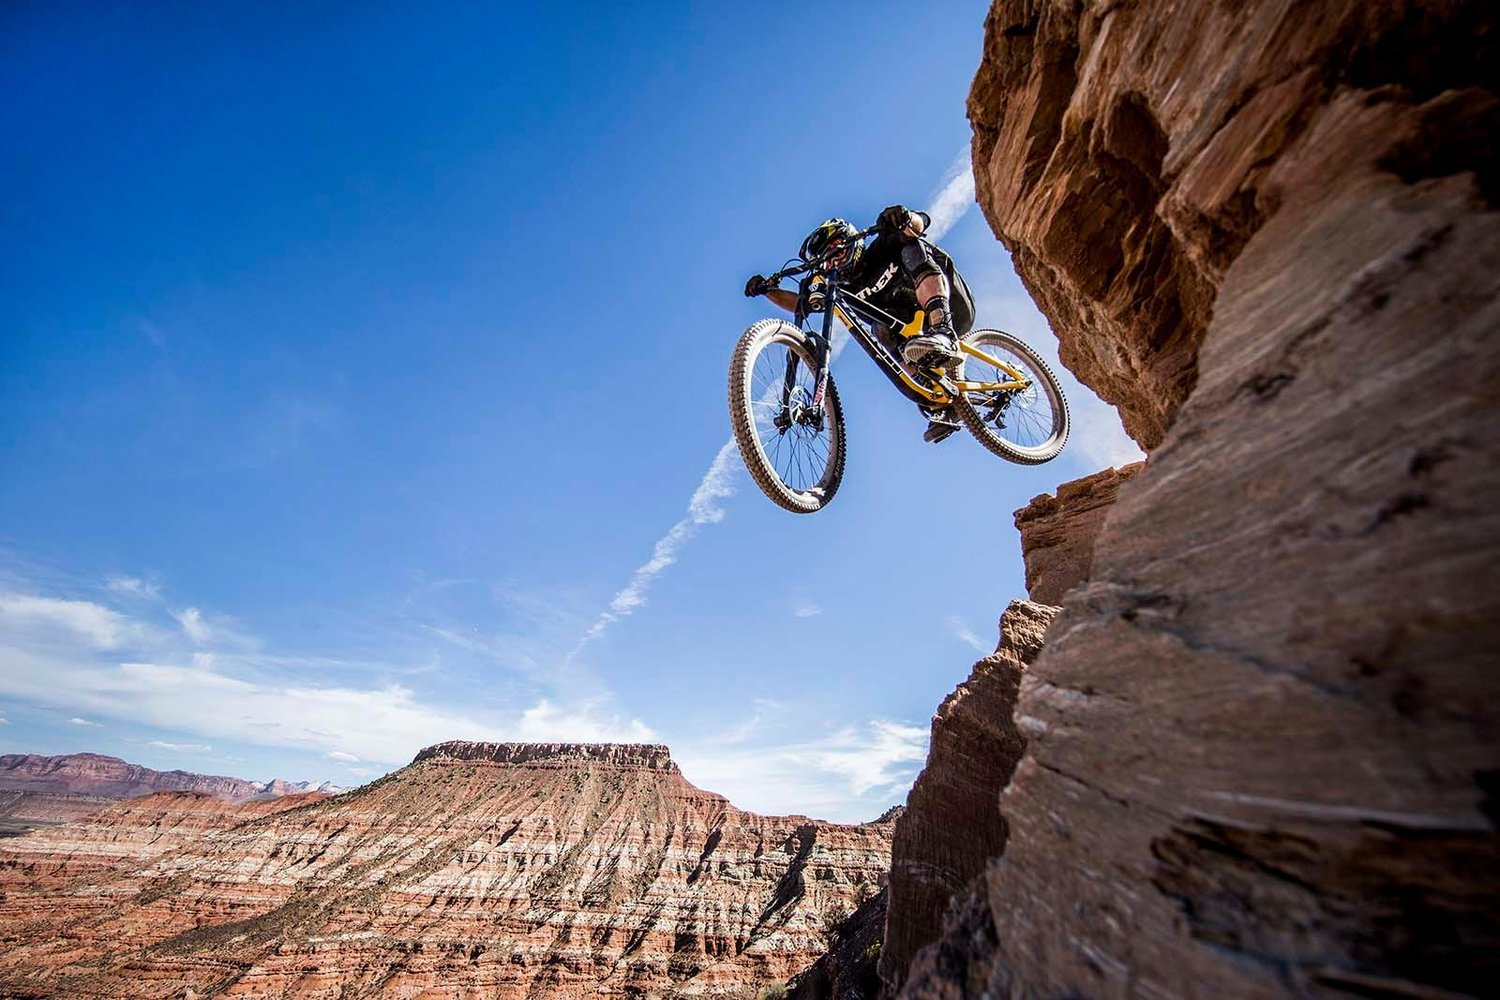 Red Bull Mountain Bike >> Red Bull Rampage 2016 World S Hardest Mountain Bike Race